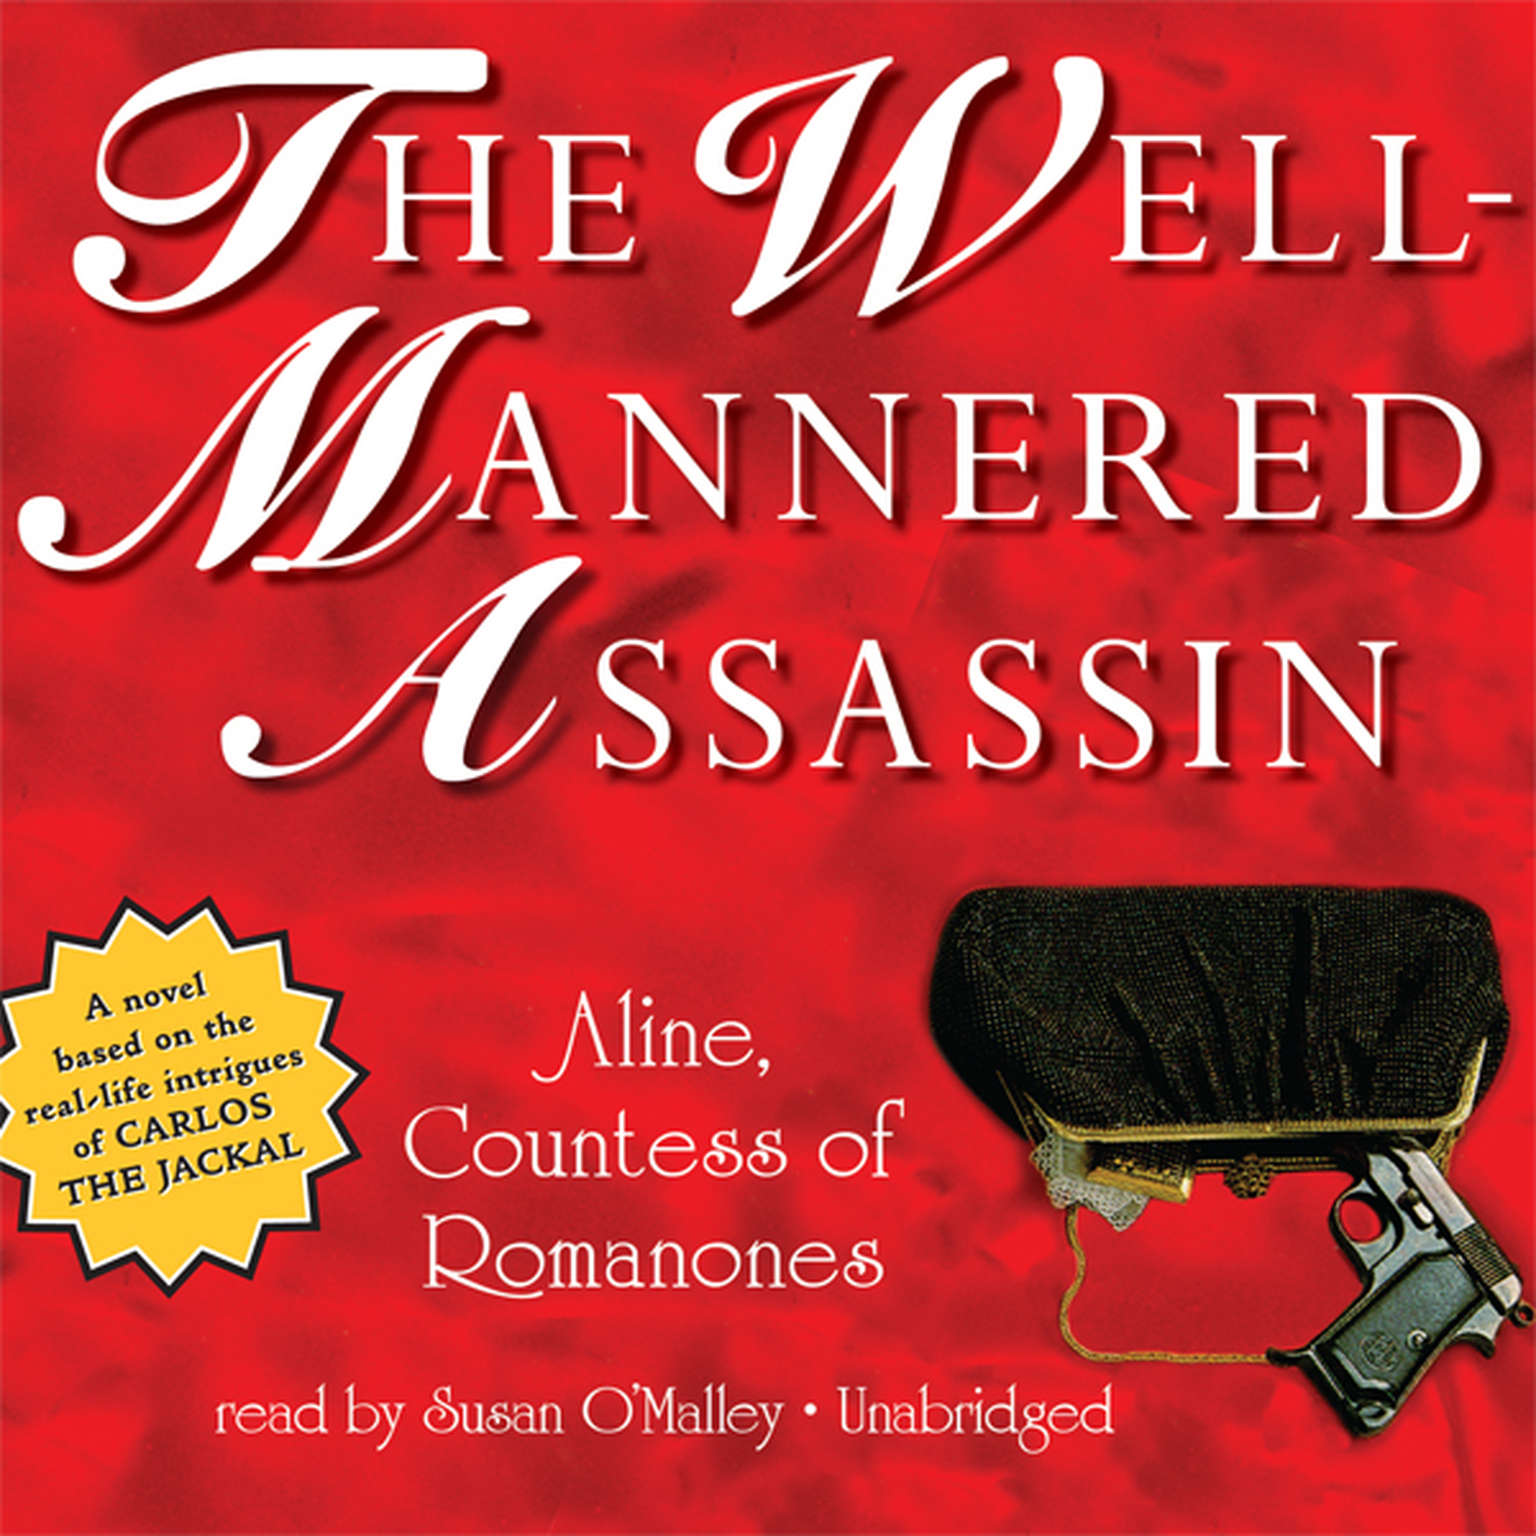 Printable The Well-Mannered Assassin Audiobook Cover Art